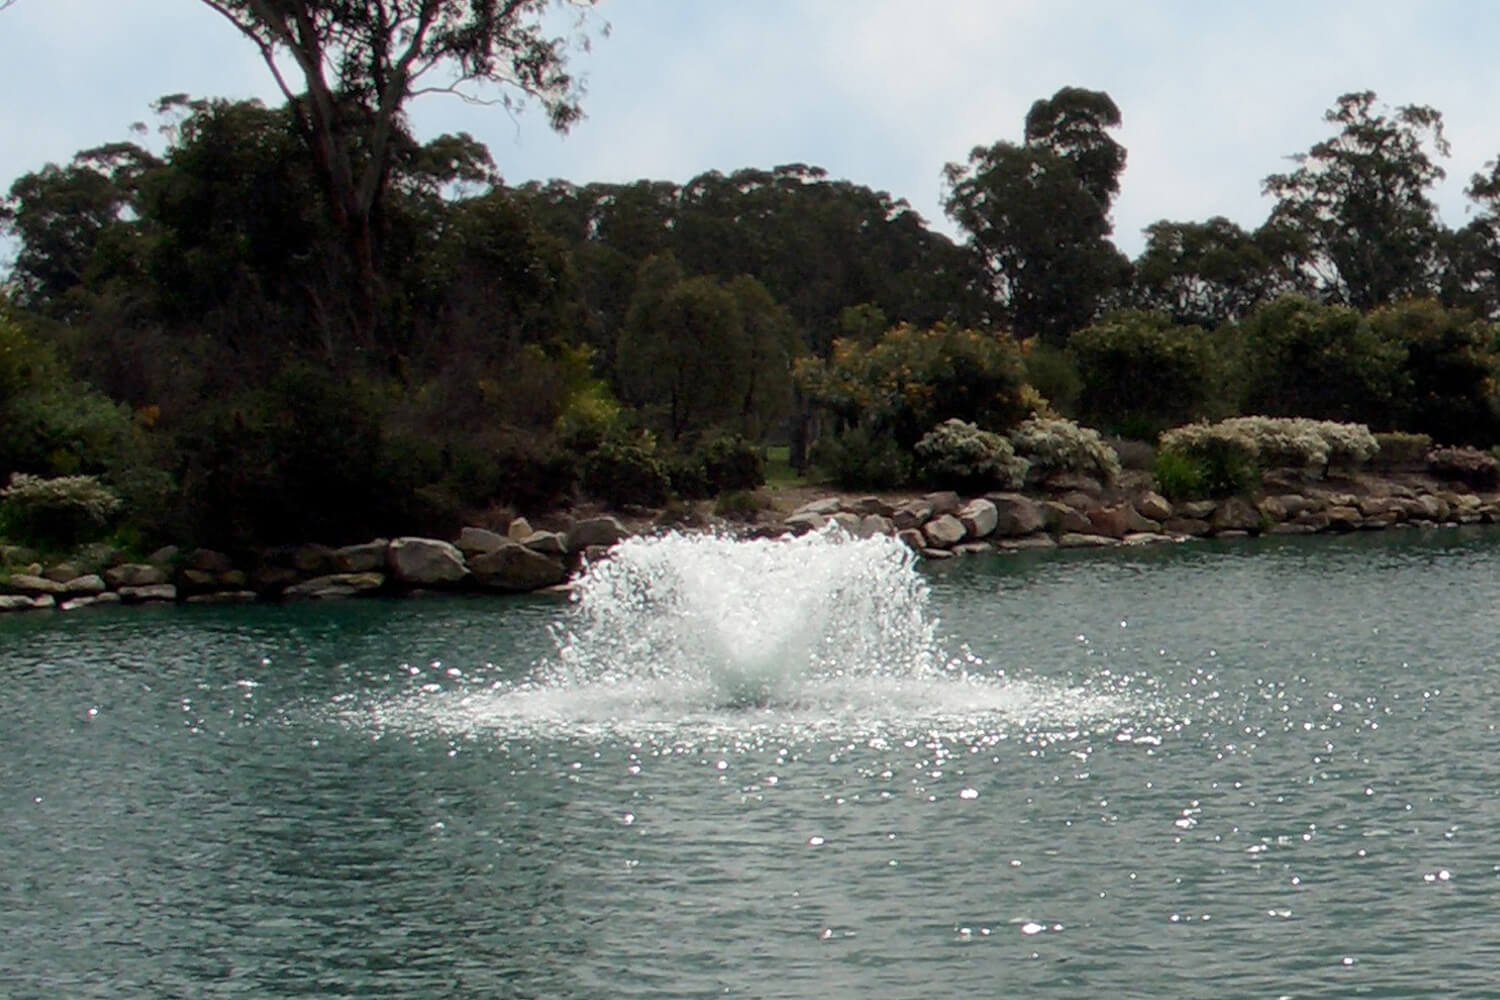 One of Otterbine's Saturn Low-Profile Spray Aerating Fountains